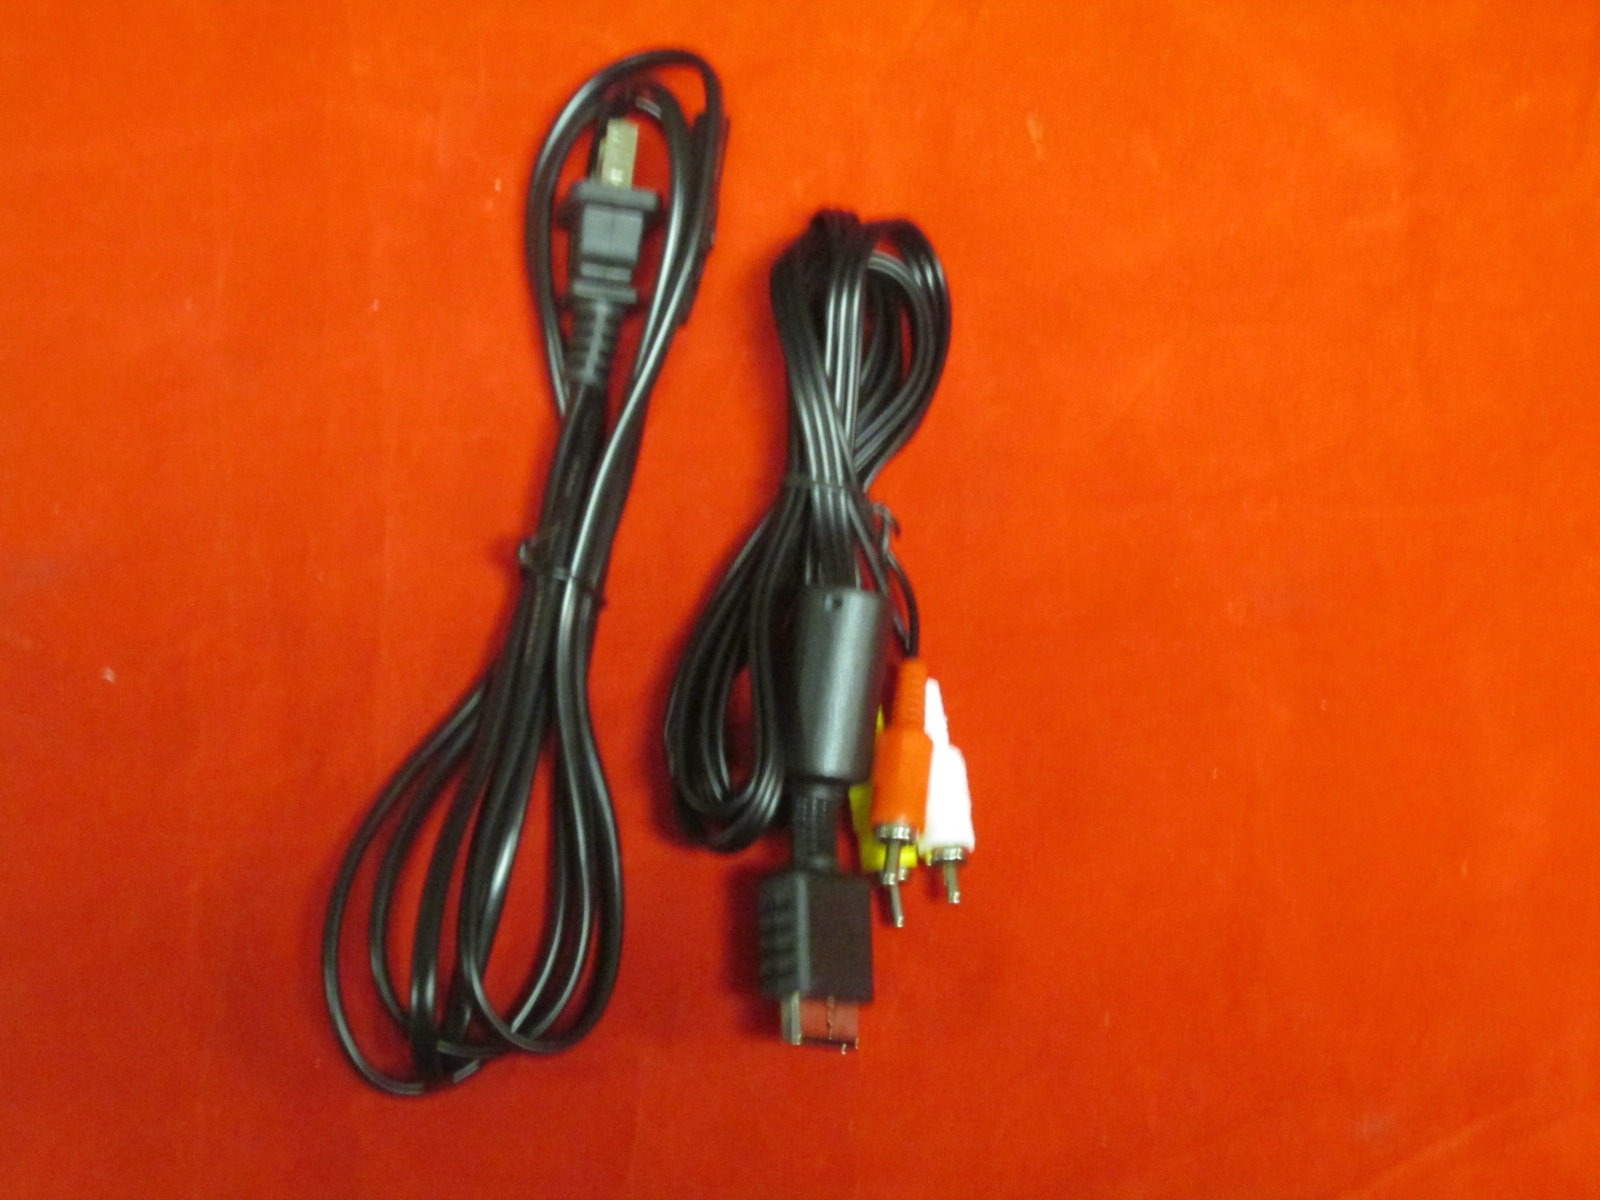 PS3 PlayStation 3 AV Cable And Power Cable For PS3 Slim And Super Slim